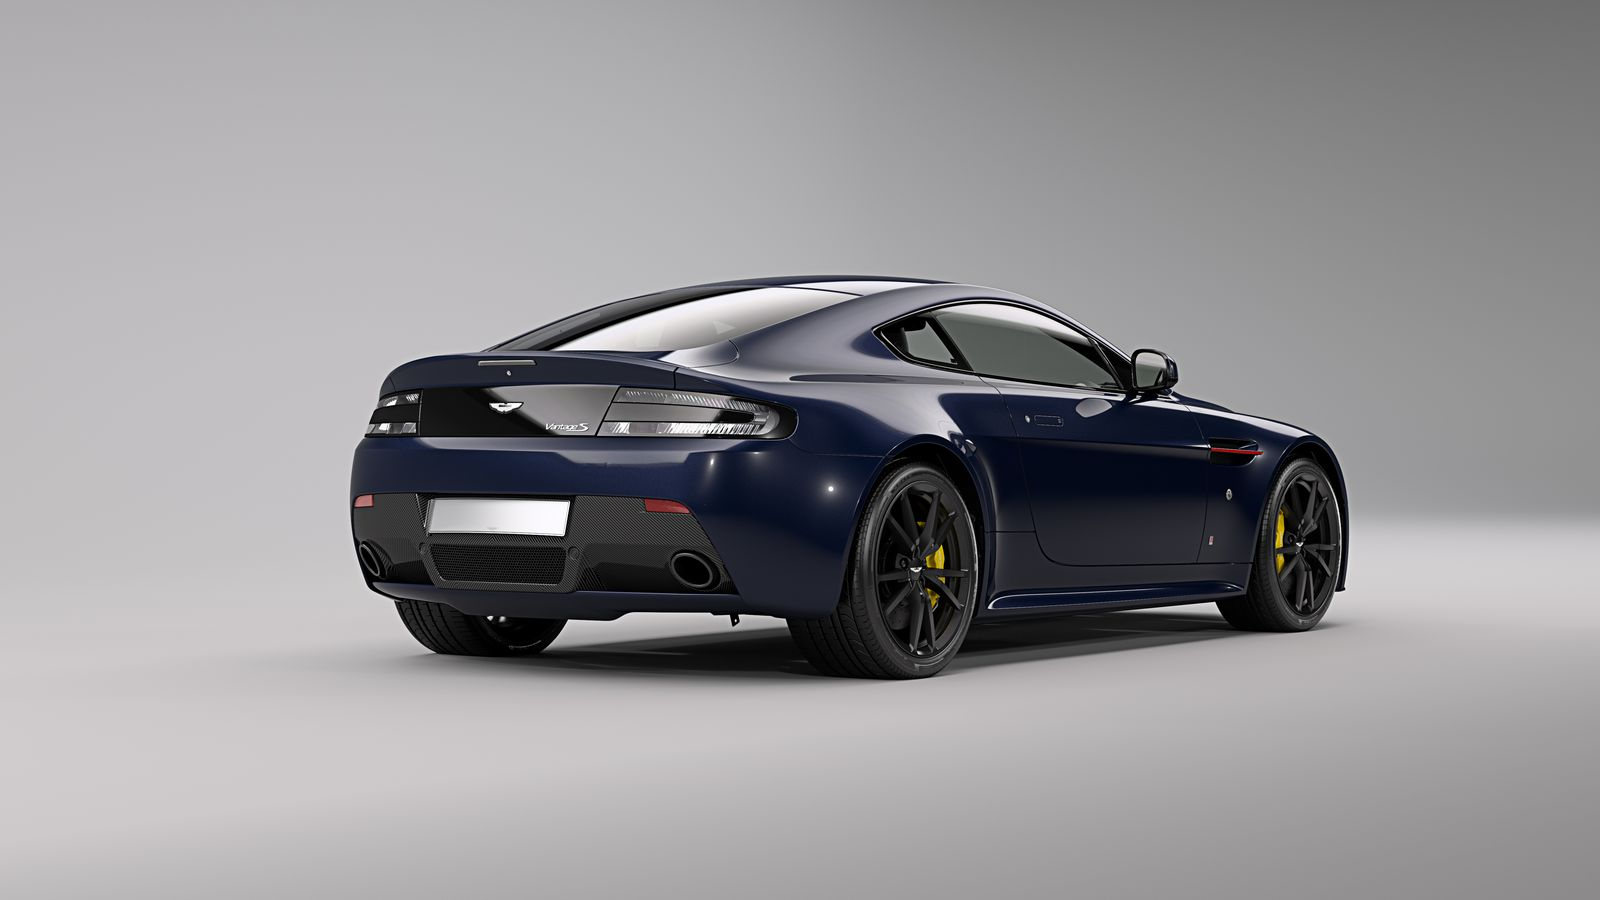 aston martin v8 and v12 vantage get red bull racing editions carscoops. Black Bedroom Furniture Sets. Home Design Ideas